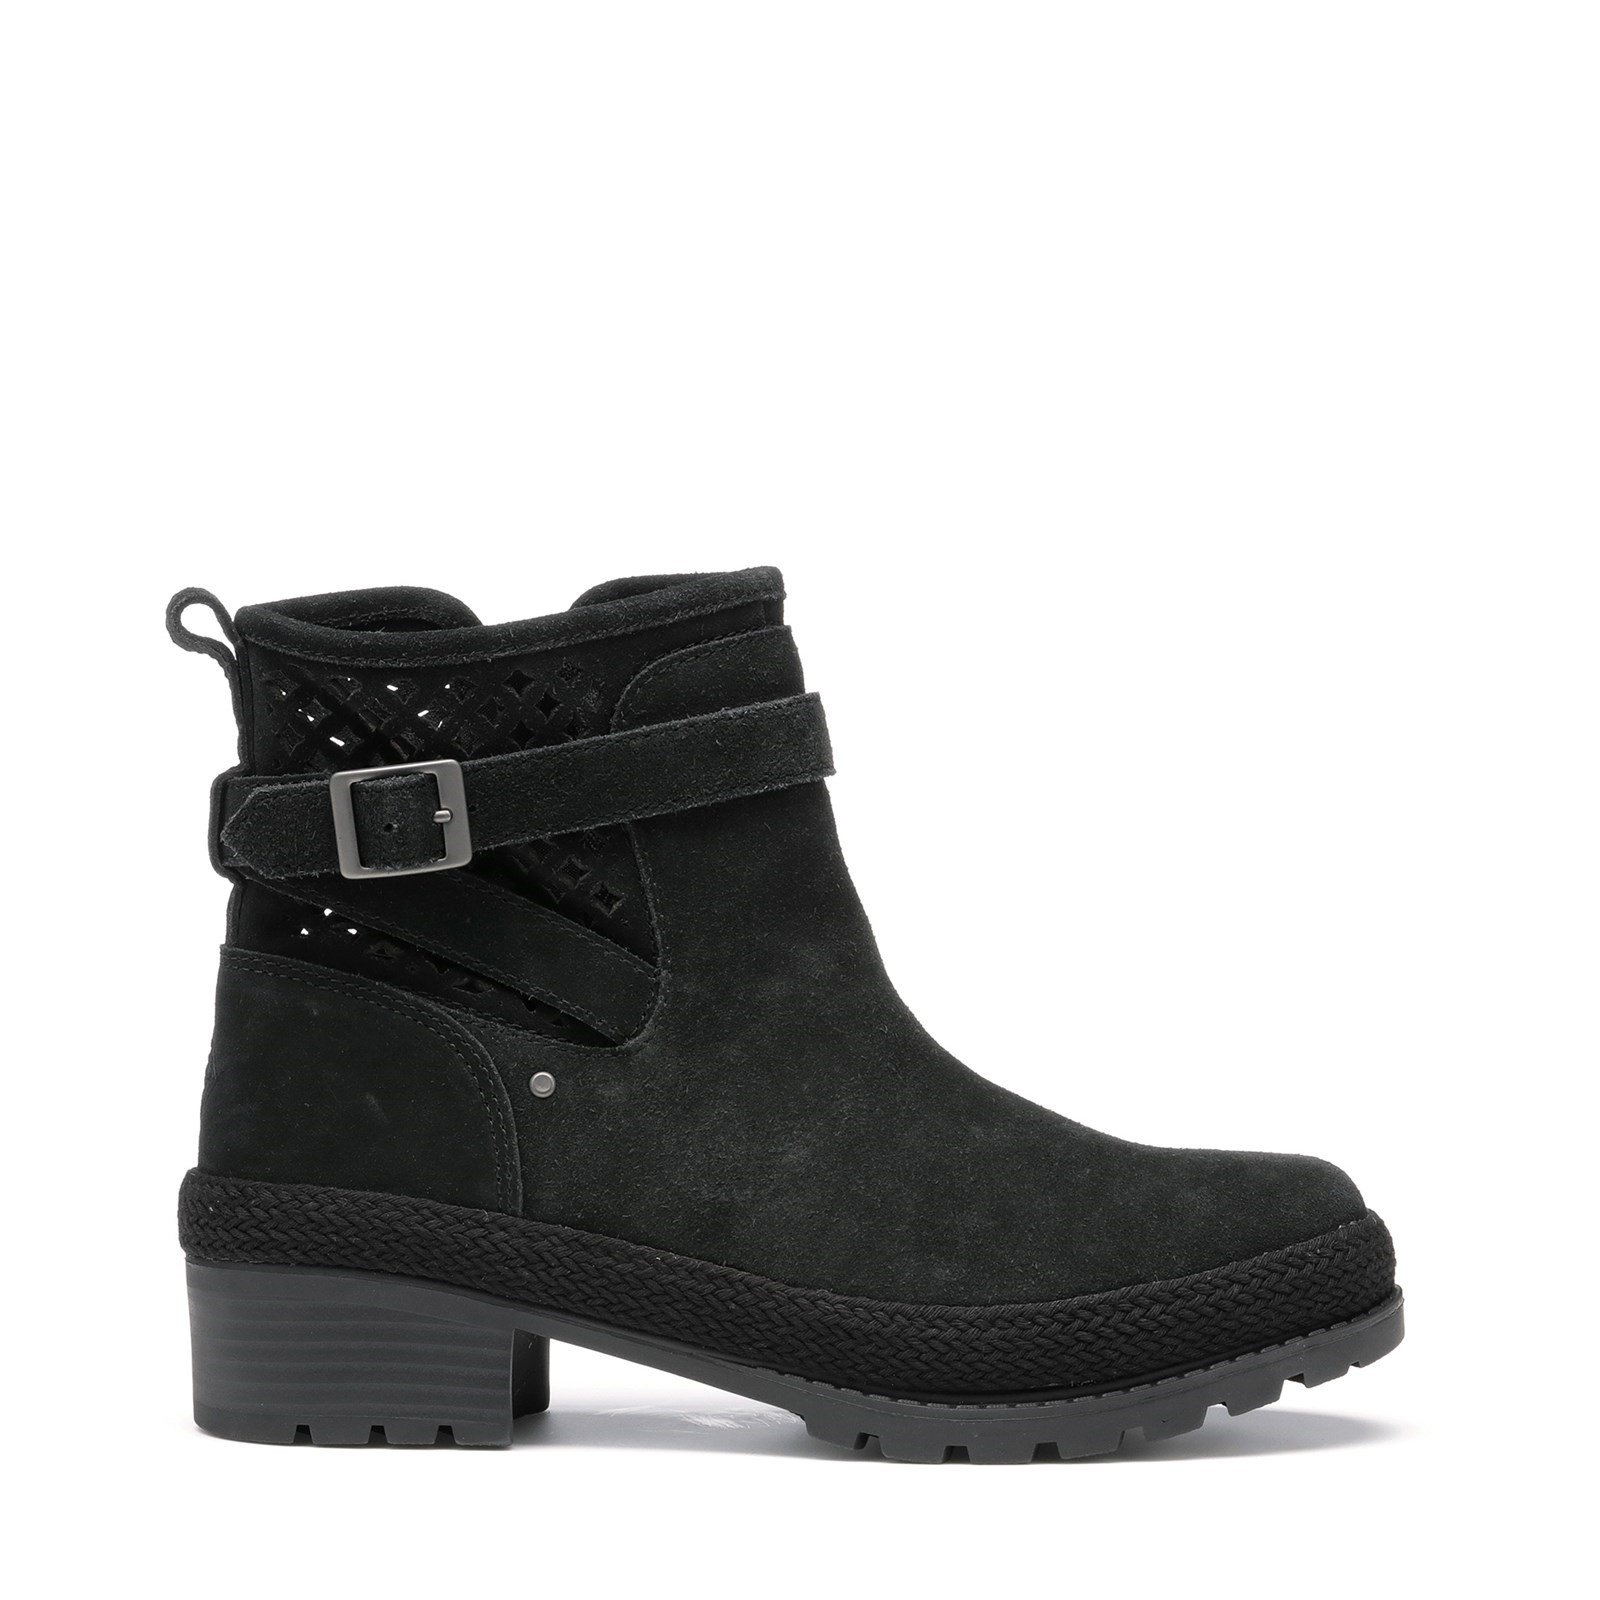 Muck Boots Women's Liberty Perforated Leather Boots Various Colours 31814 - Black 6